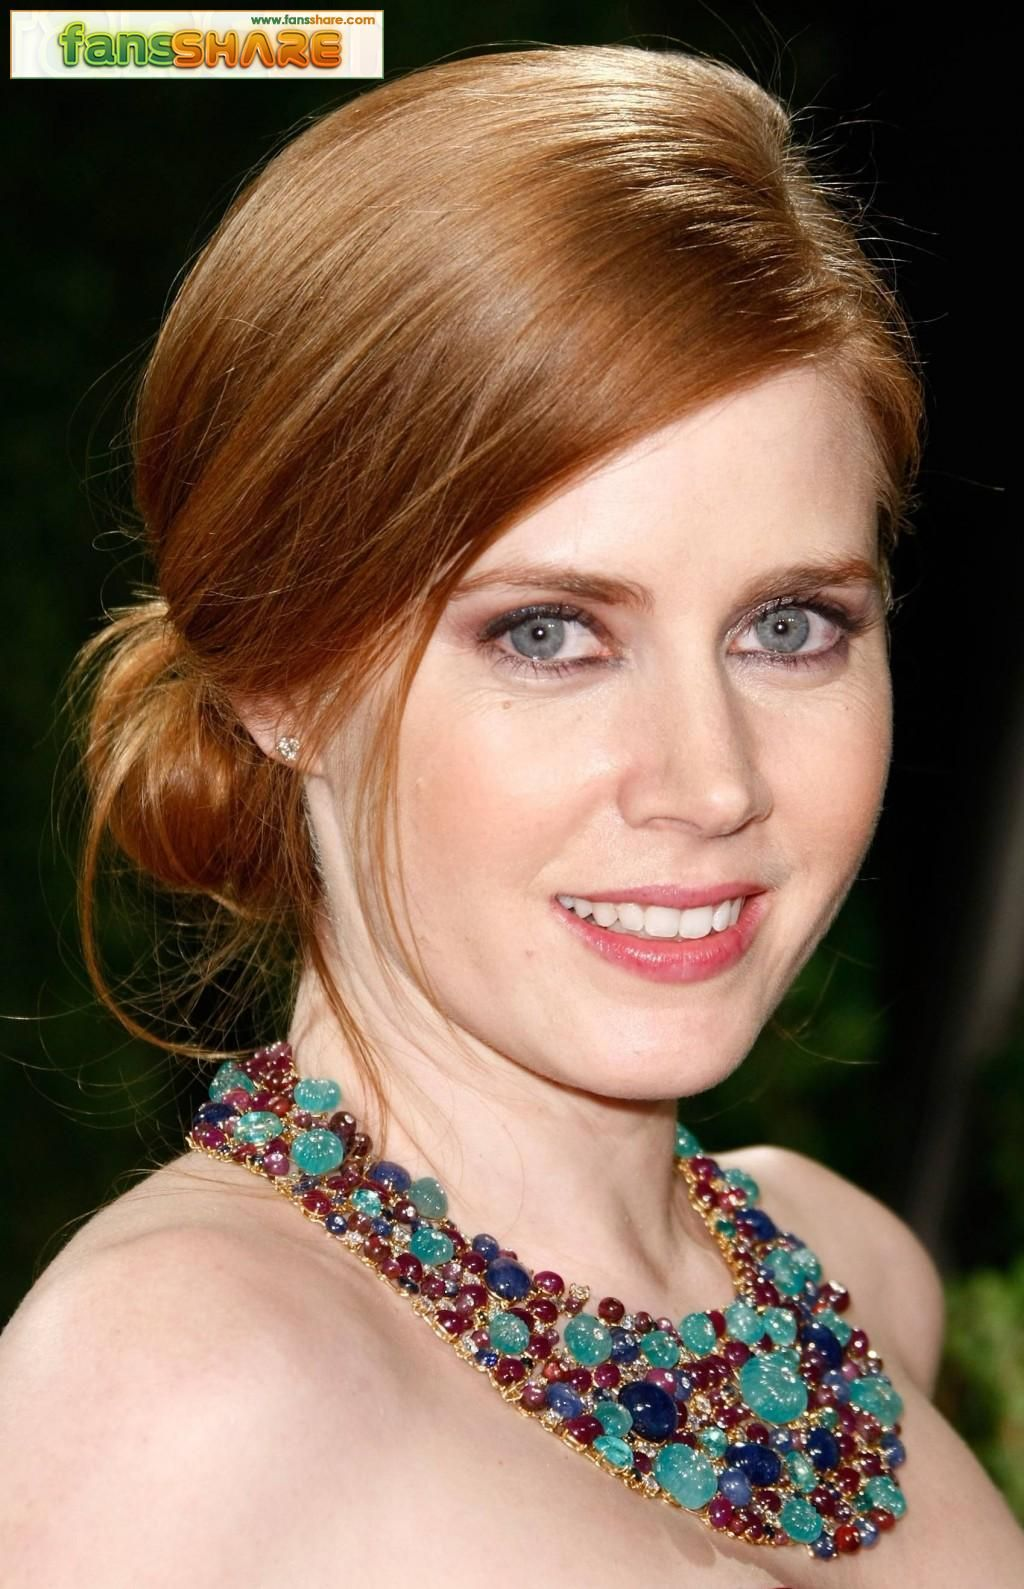 normally not a fan of gingers but she looks ok